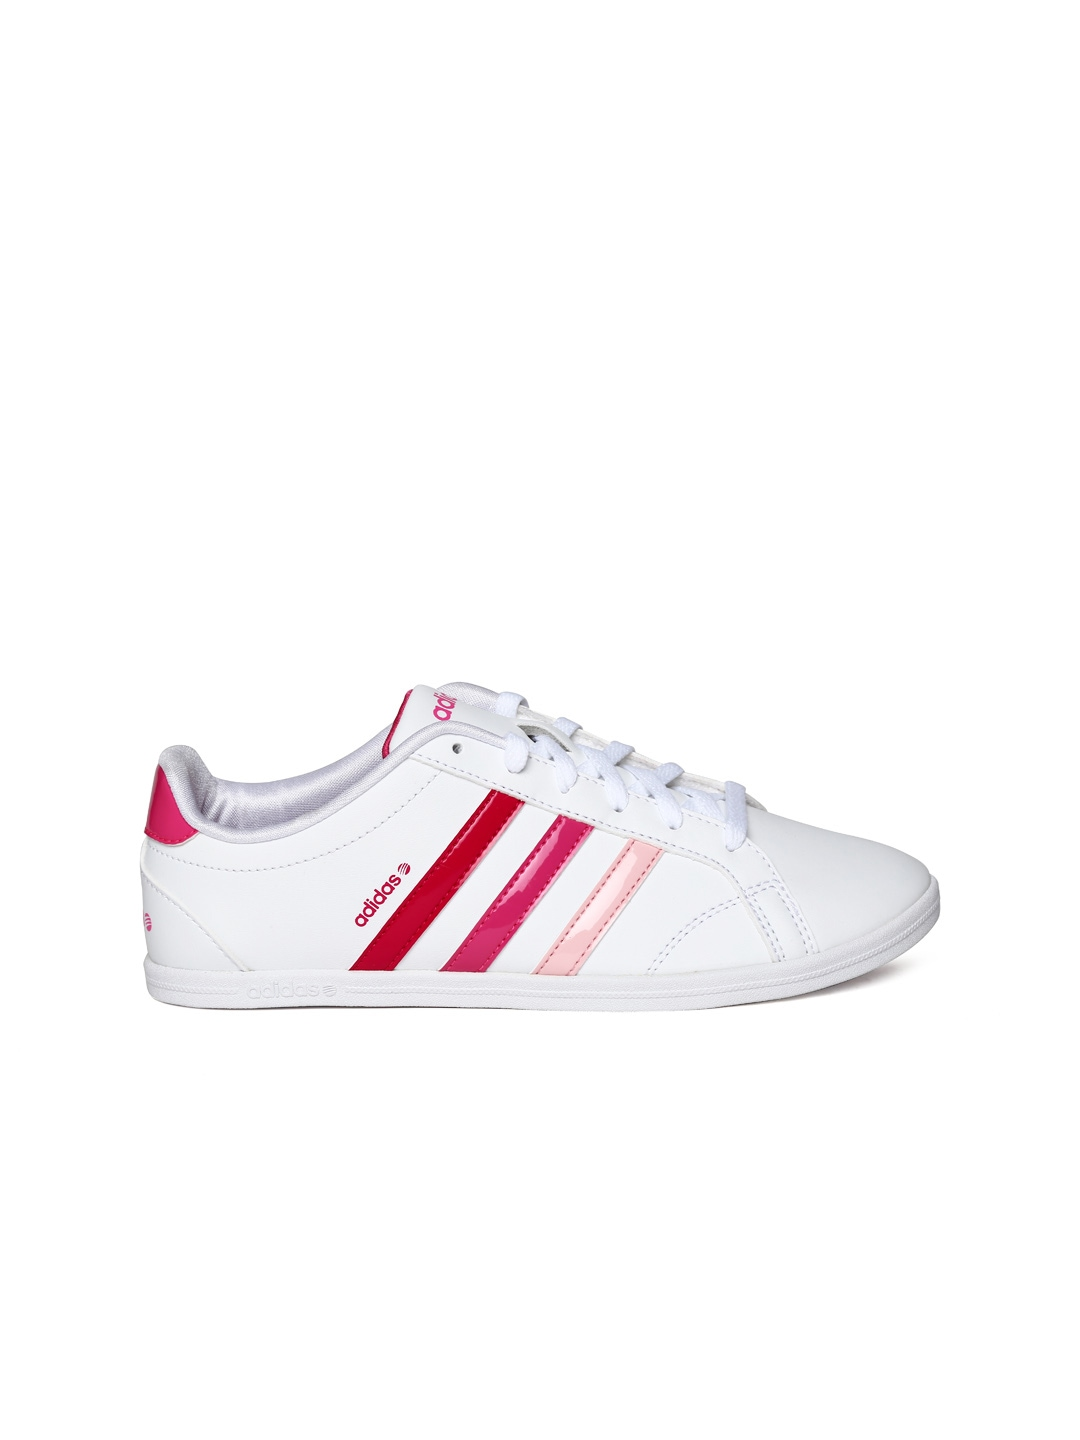 Adidas Neo Shoes Womens White stockholmsnyheter.nu